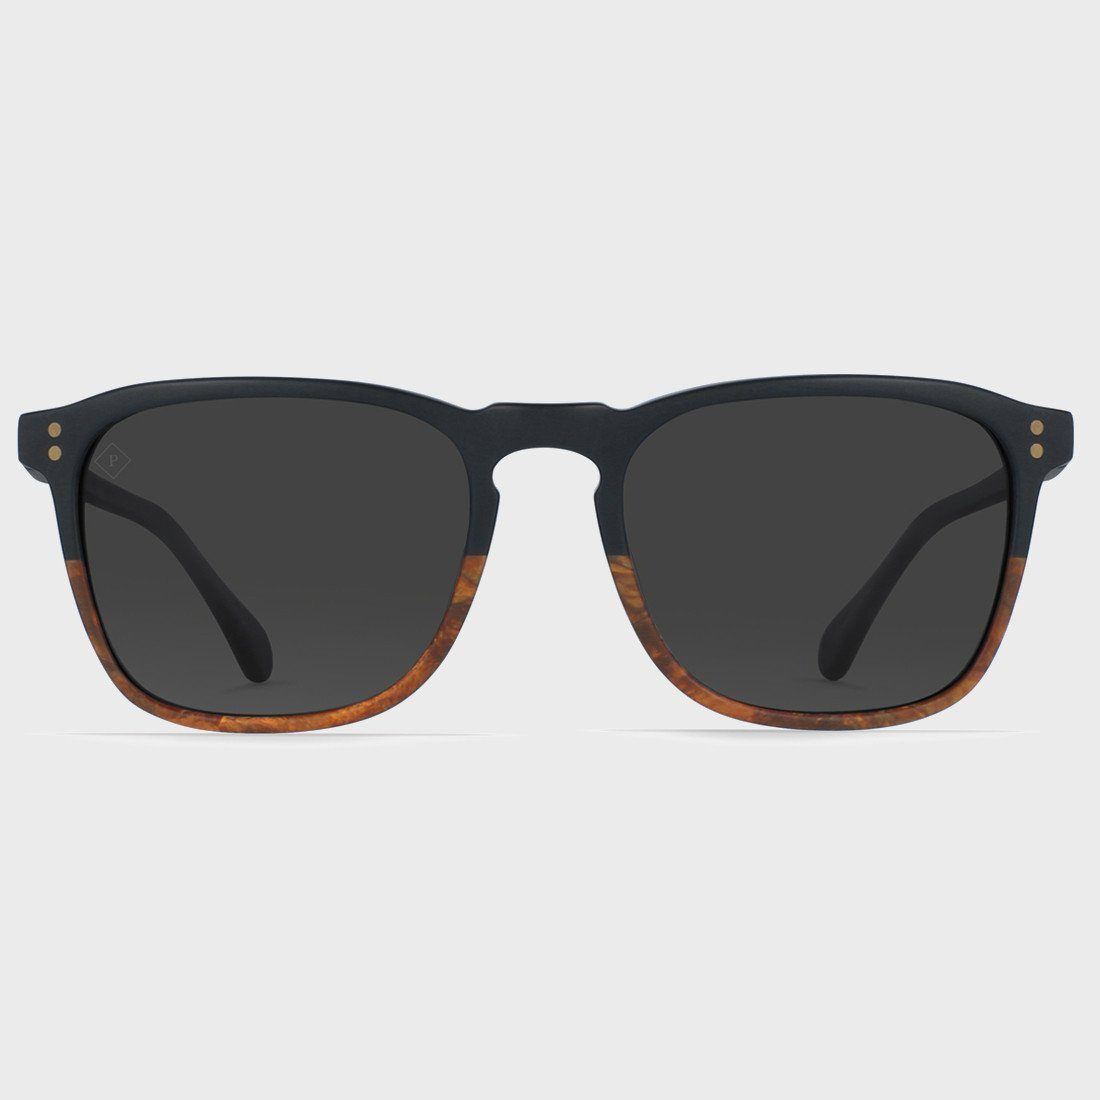 Raen Wiley Sunglasses Burlwood (Polarized)